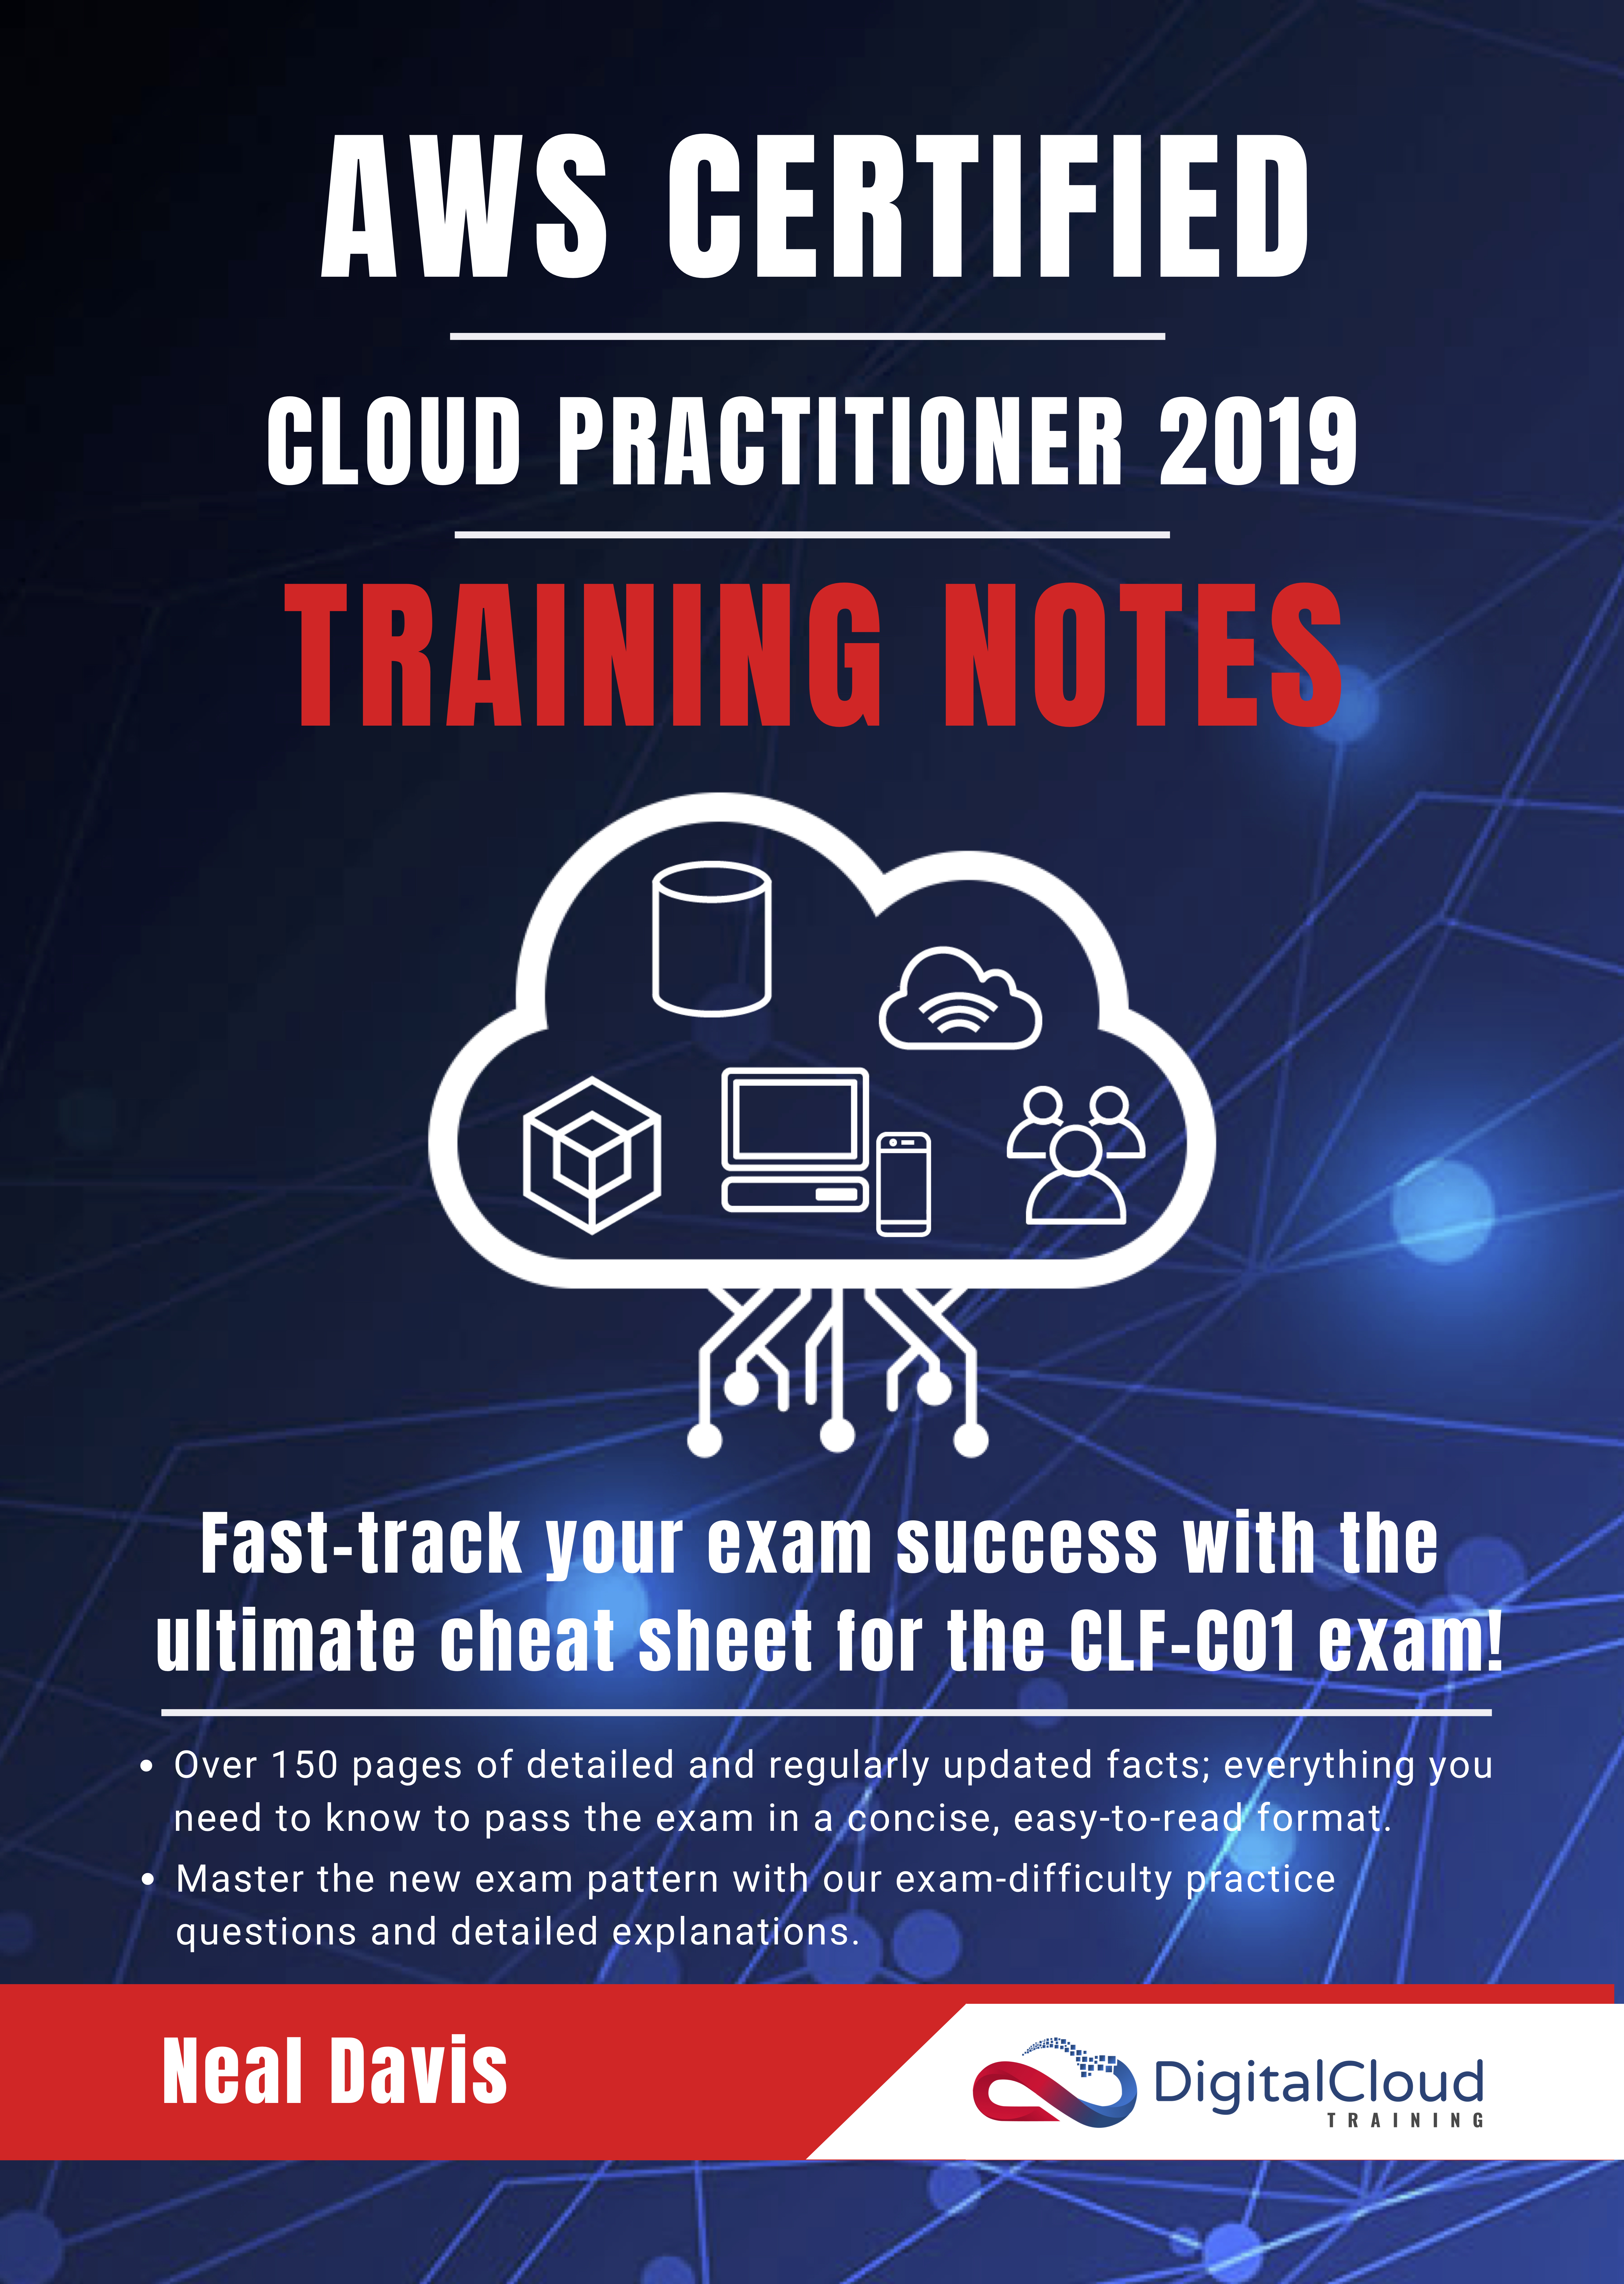 AWS Certified Cloud Practitioner Training Notes 2019, an Ebook by Neal Davis